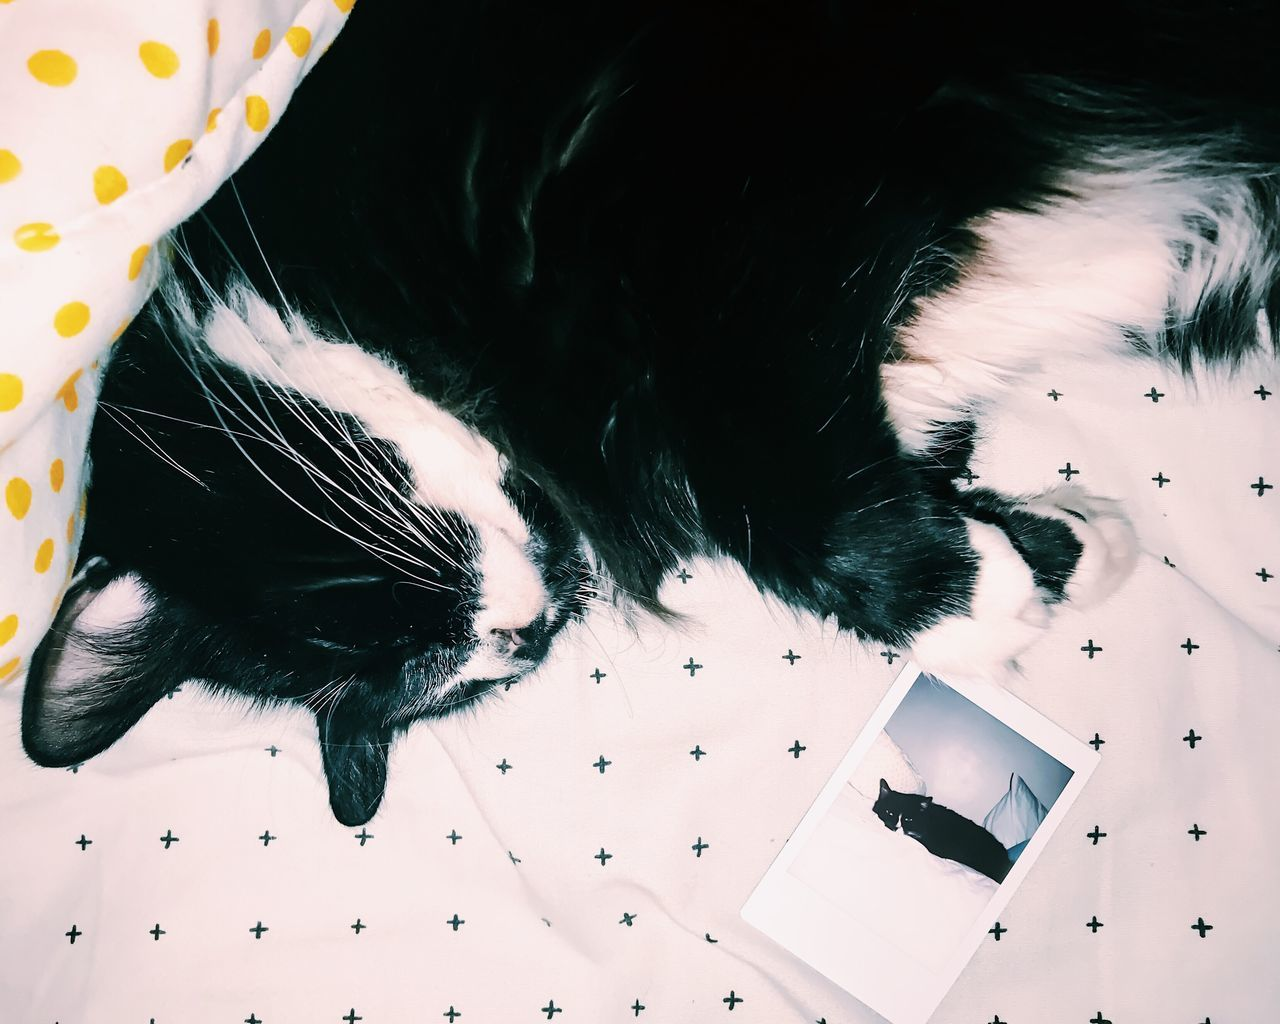 High angle view of cat sleeping next to photo of itsefl